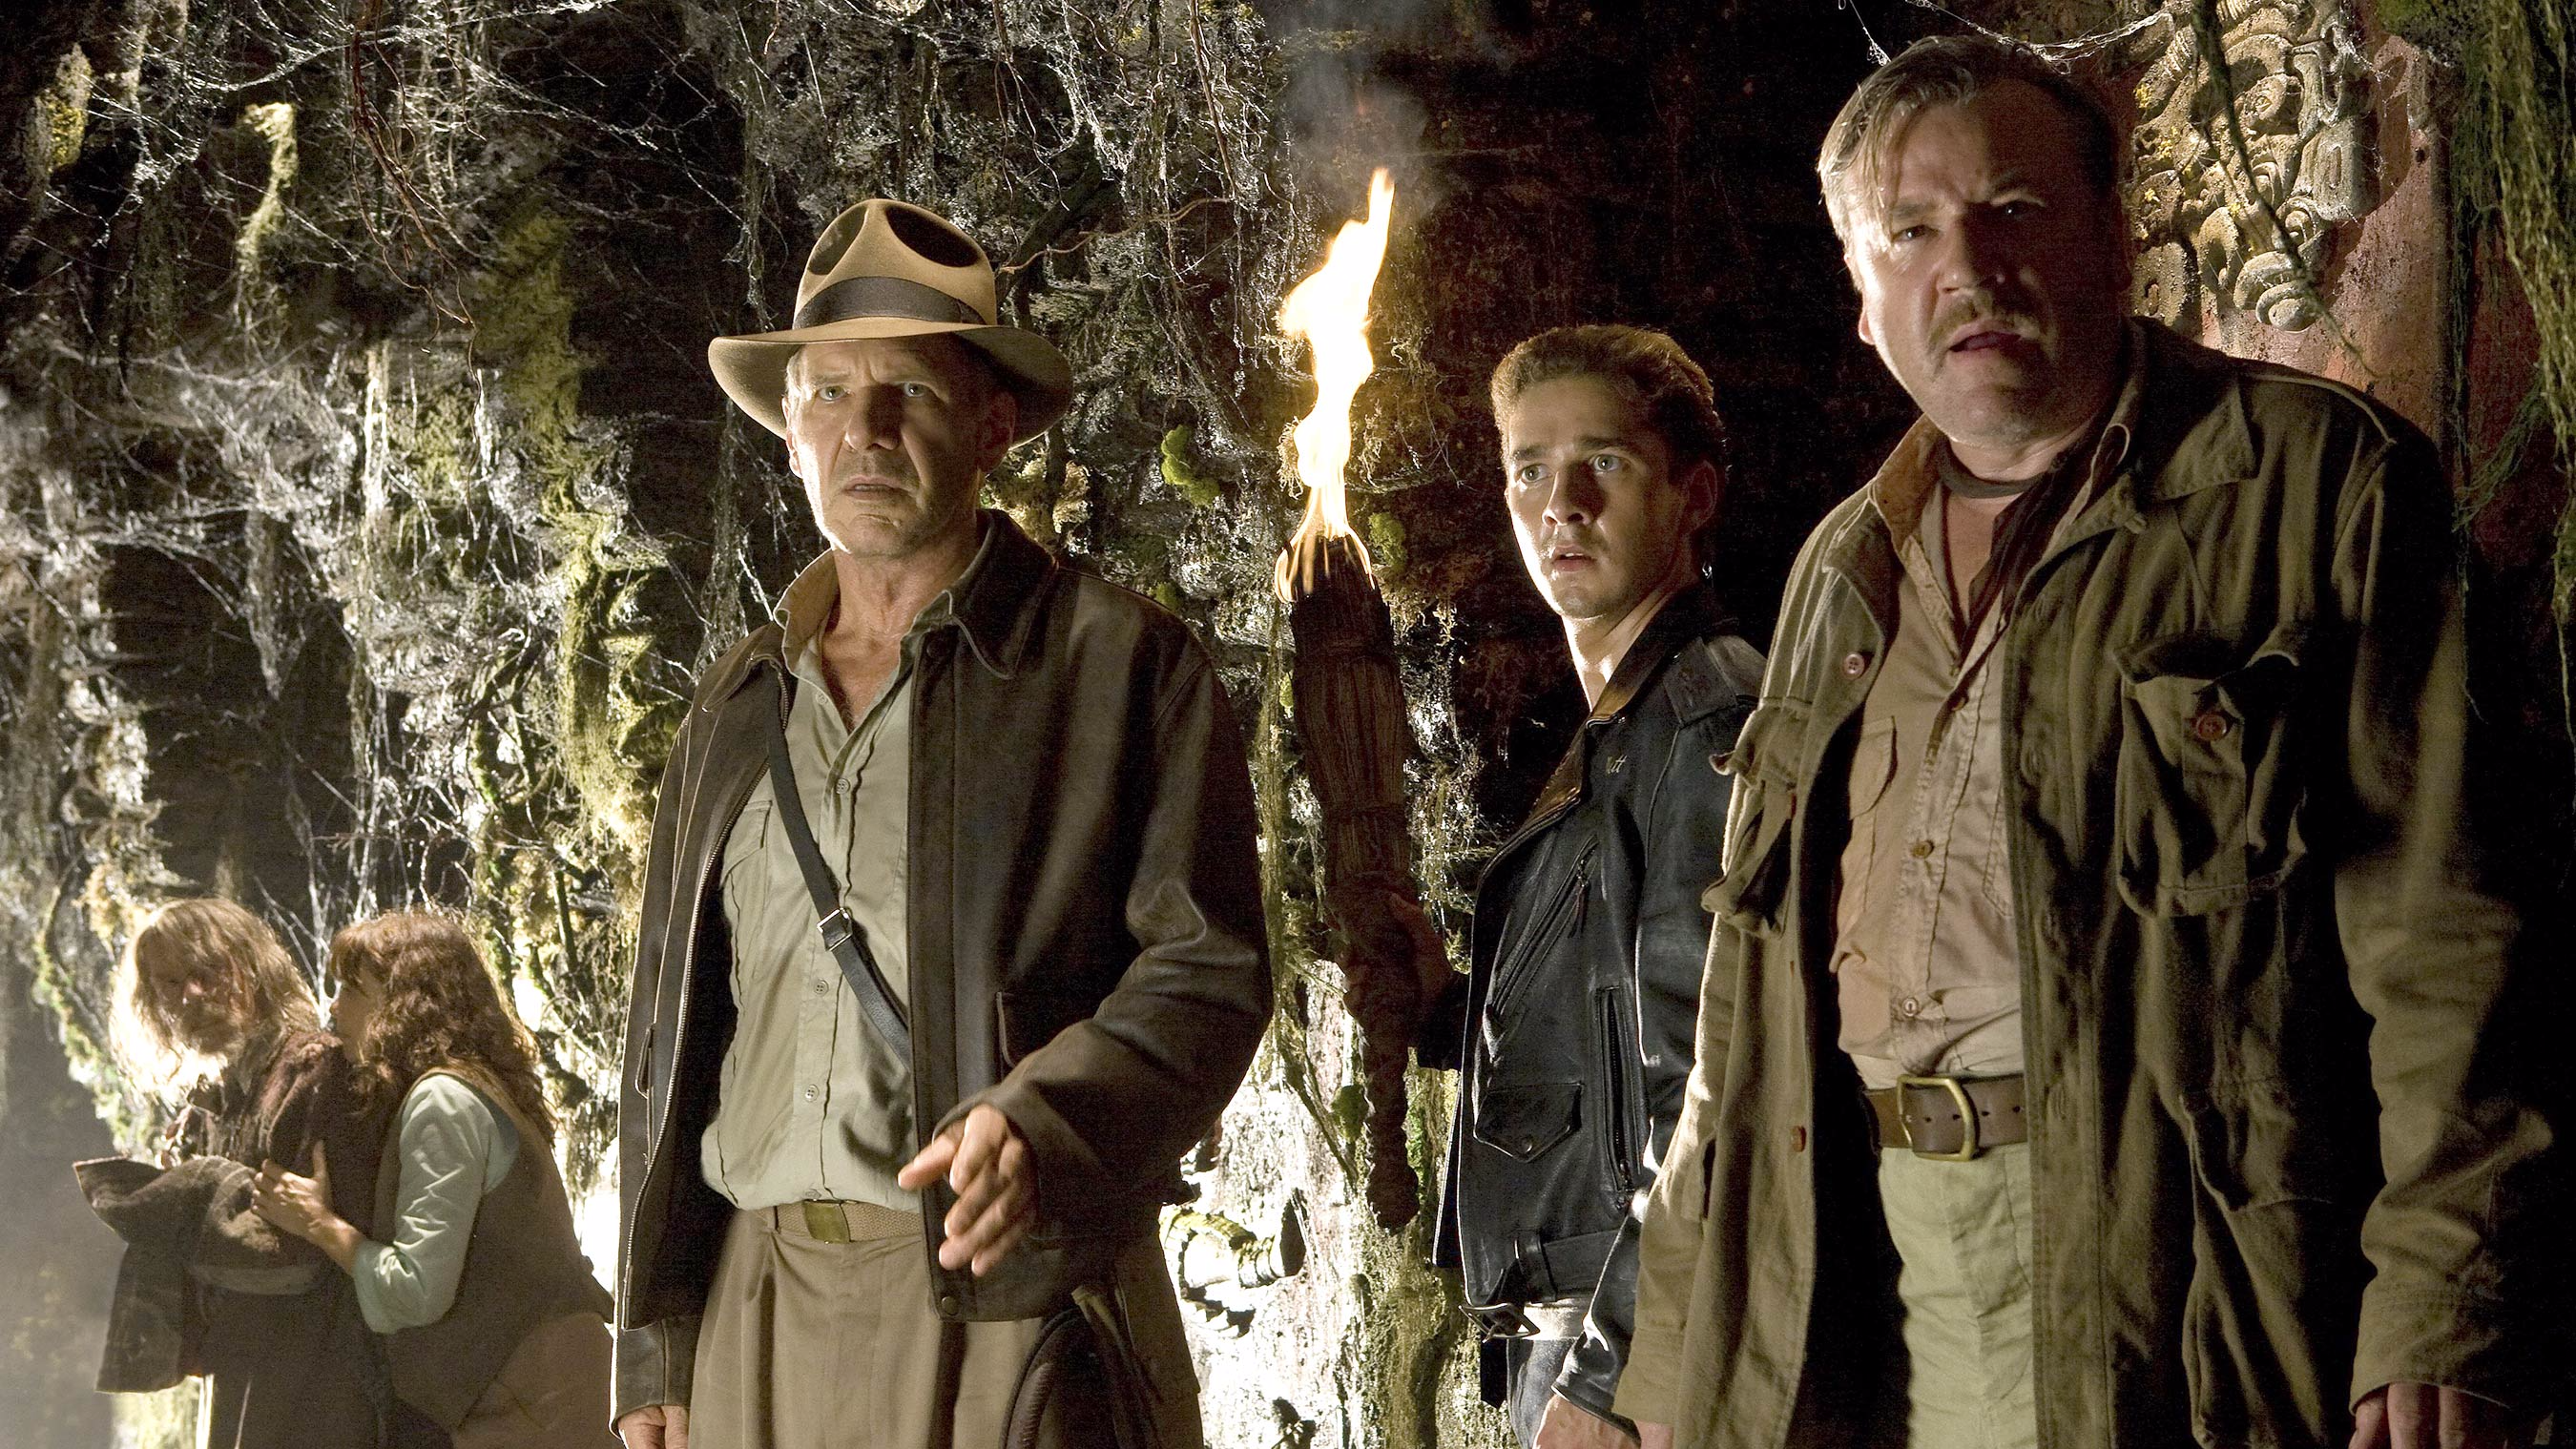 Indiana Jones 5 won't feature Shia LaBeouf's character